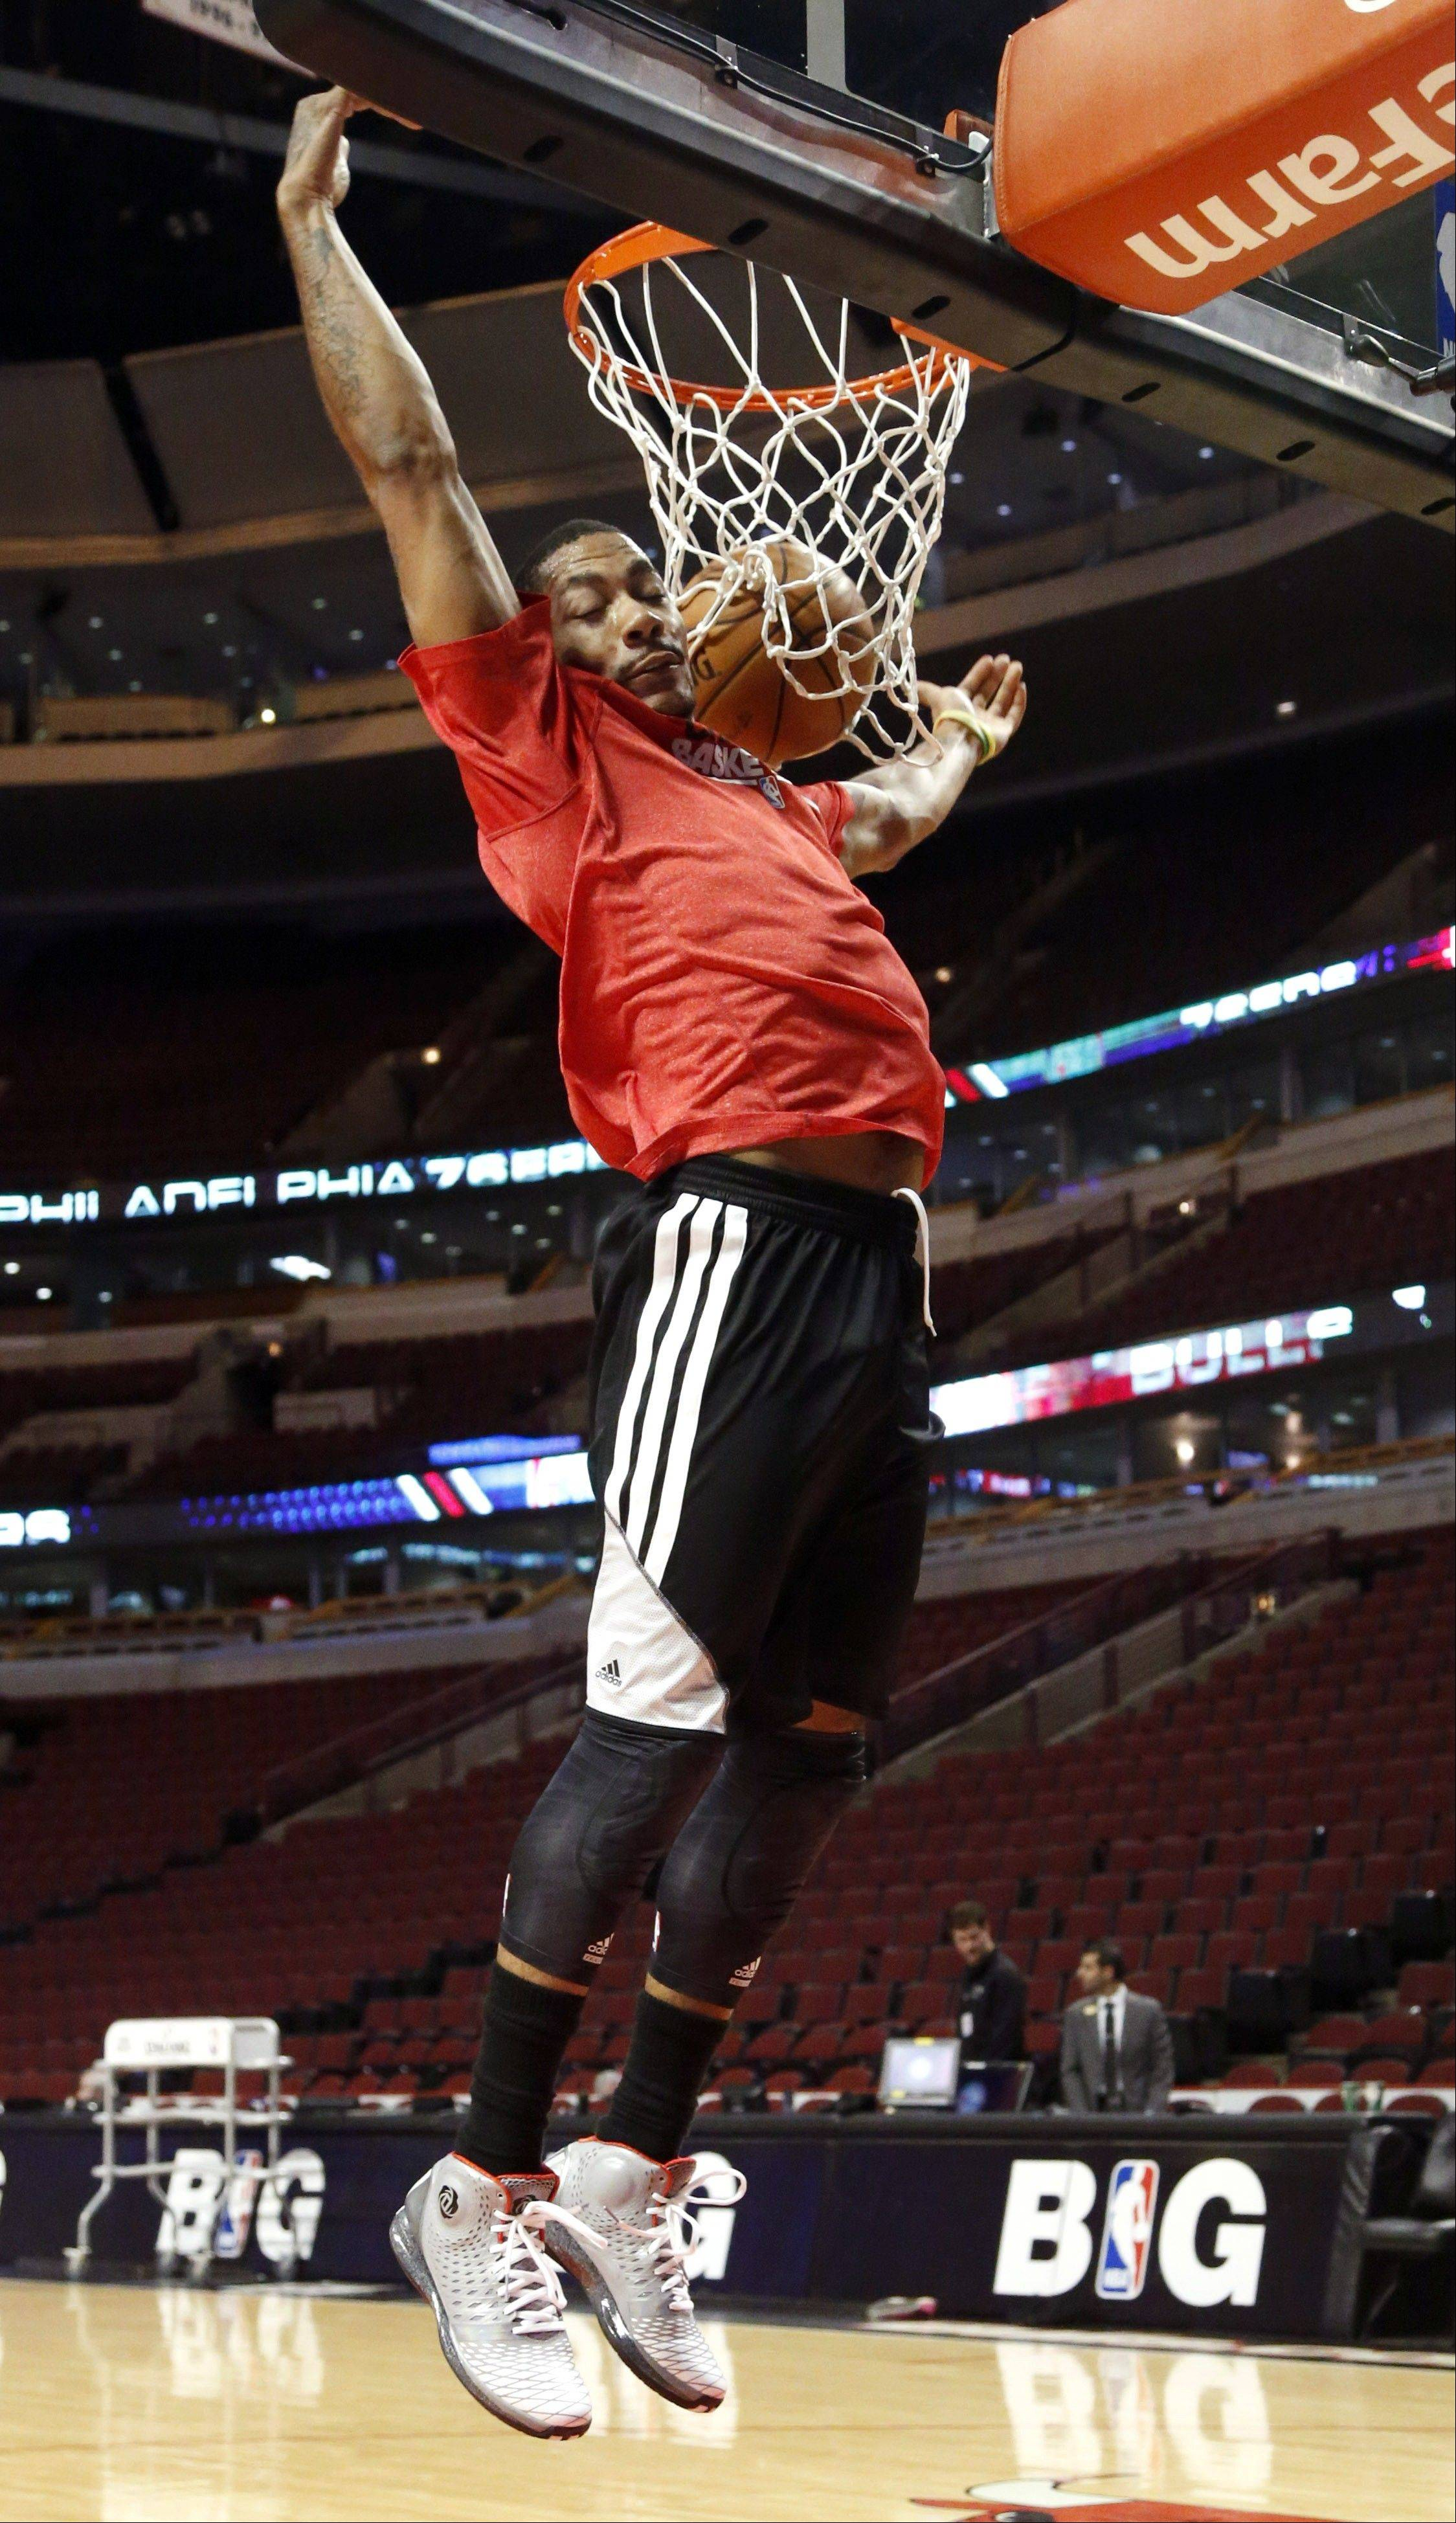 Bulls guard Derrick Rose dunks during a workout before an NBA basketball game against the Philadelphia 76ers, Thursday, Feb. 28, 2013, in Chicago. Rose remains out while recovering from a knee injury.